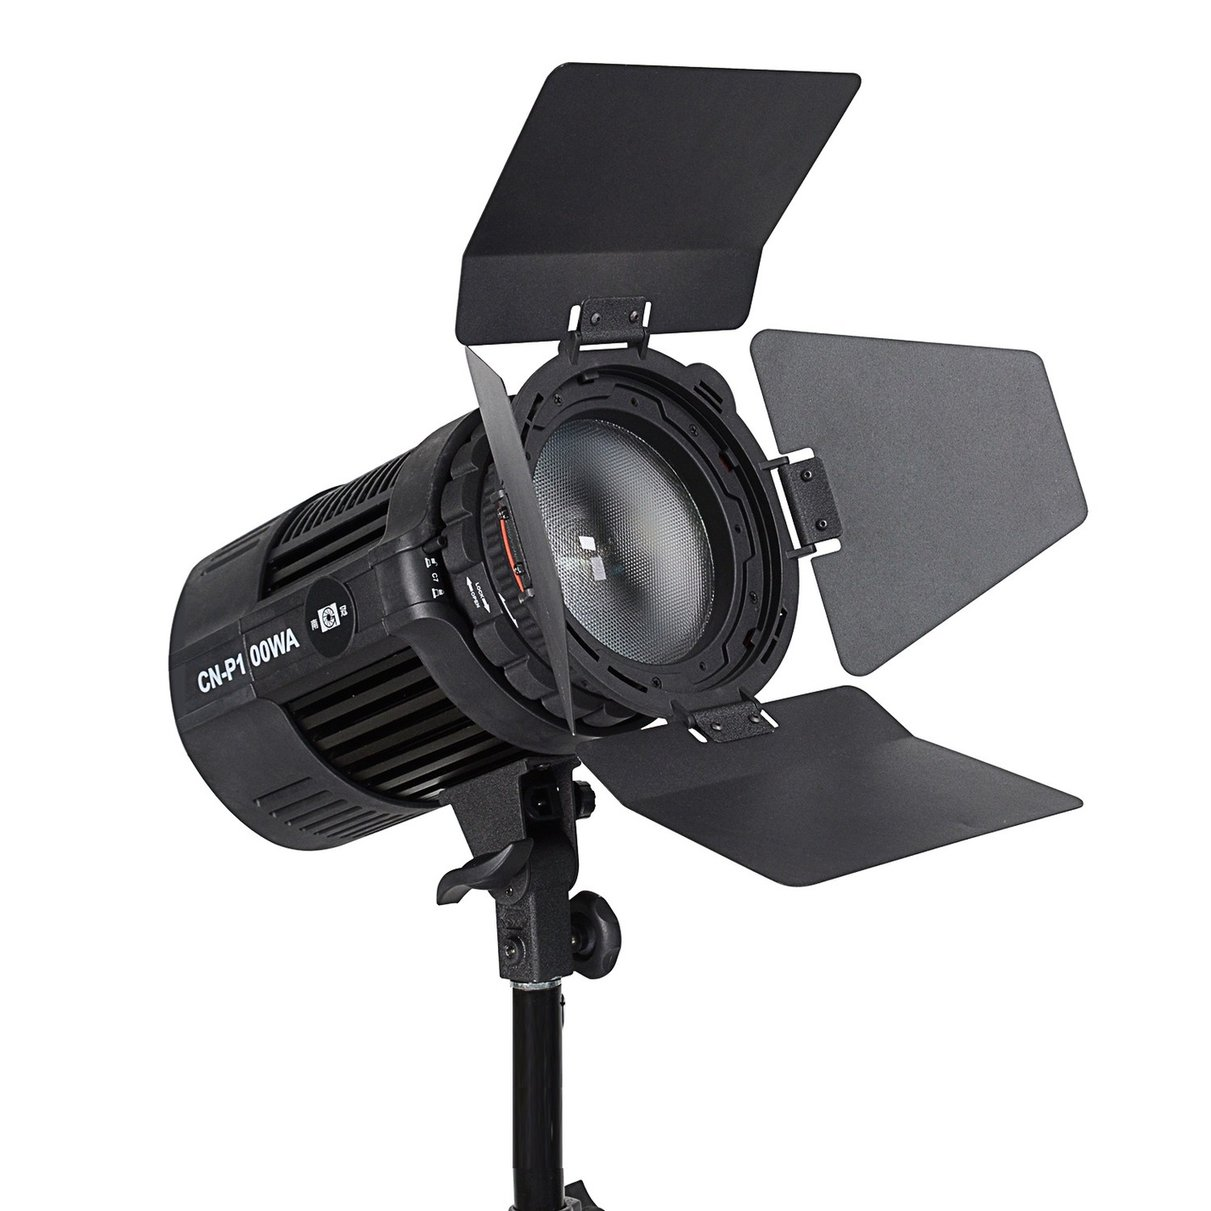 Nanguang P100WA CN- P100WA 100W professional Radio wireless COB LED studio light spotlight